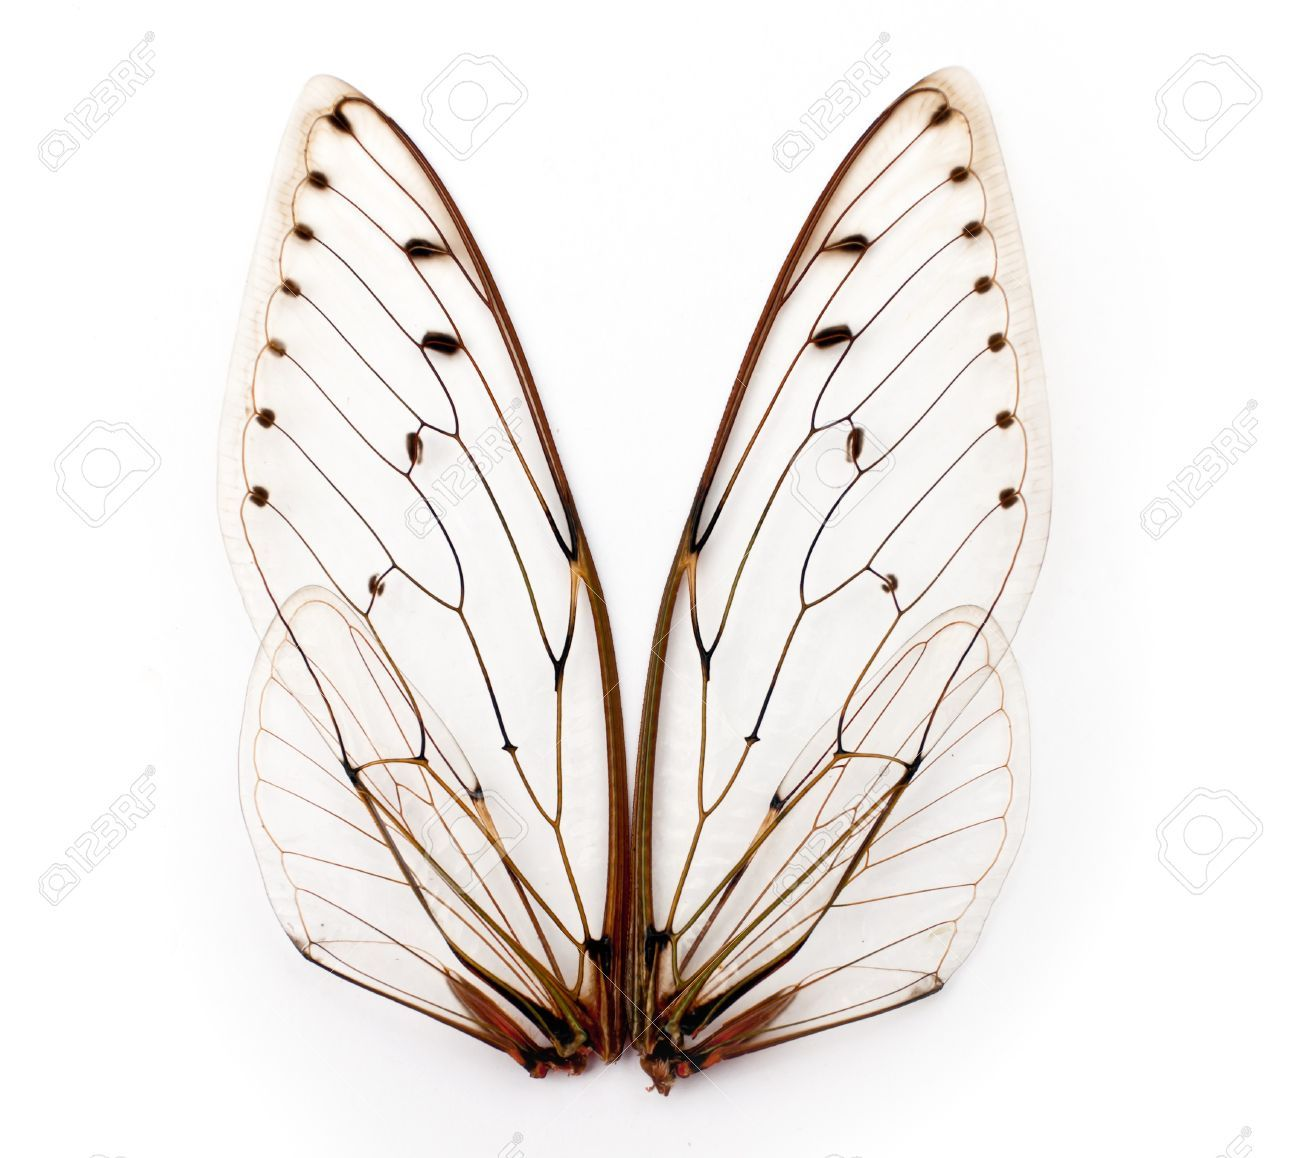 Insect Wings Texture a Pair of Cicada Insect Wings | Animals, Wings ...